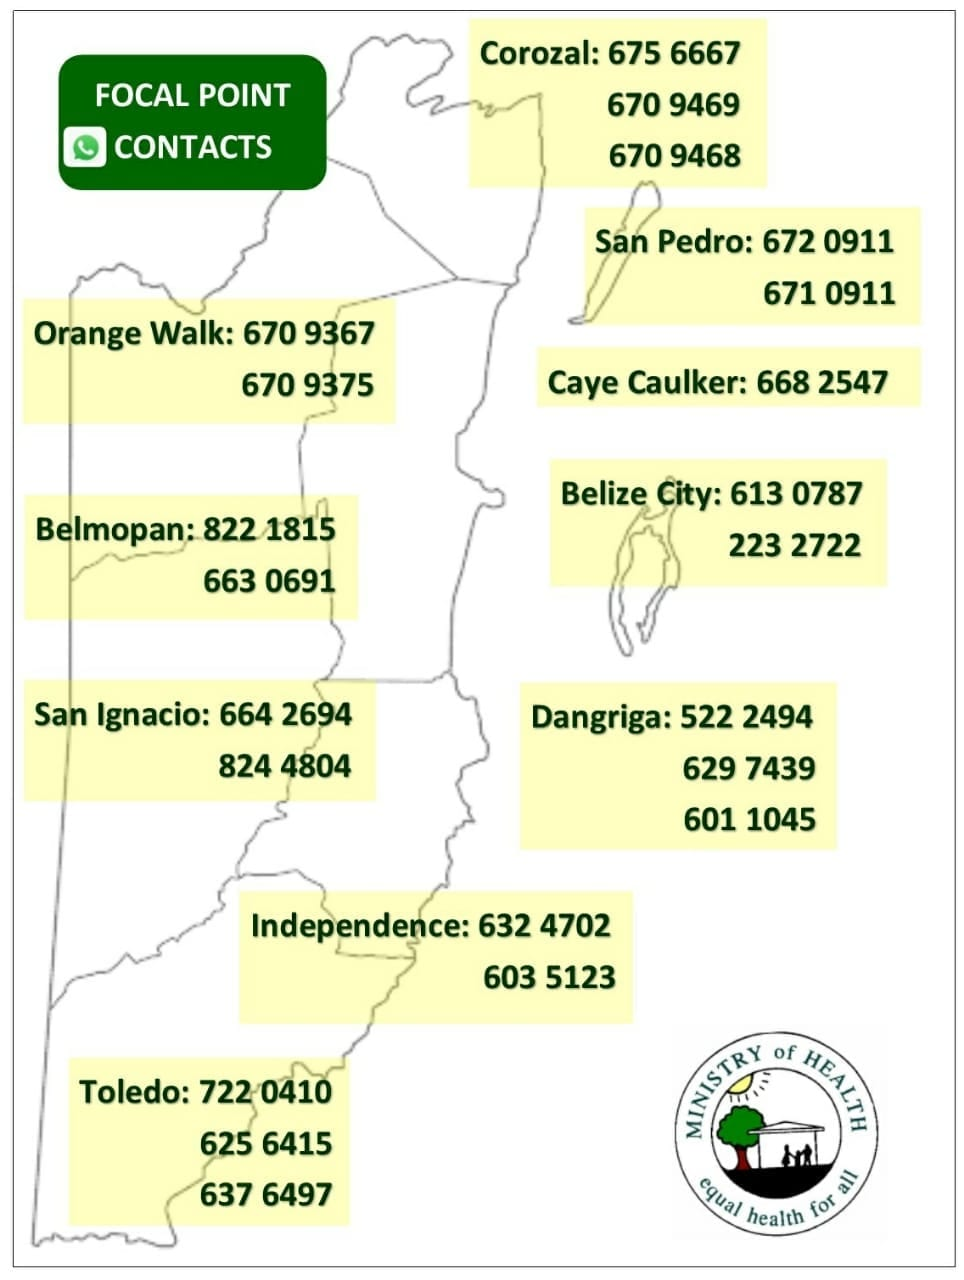 covid-19 community contacts belize